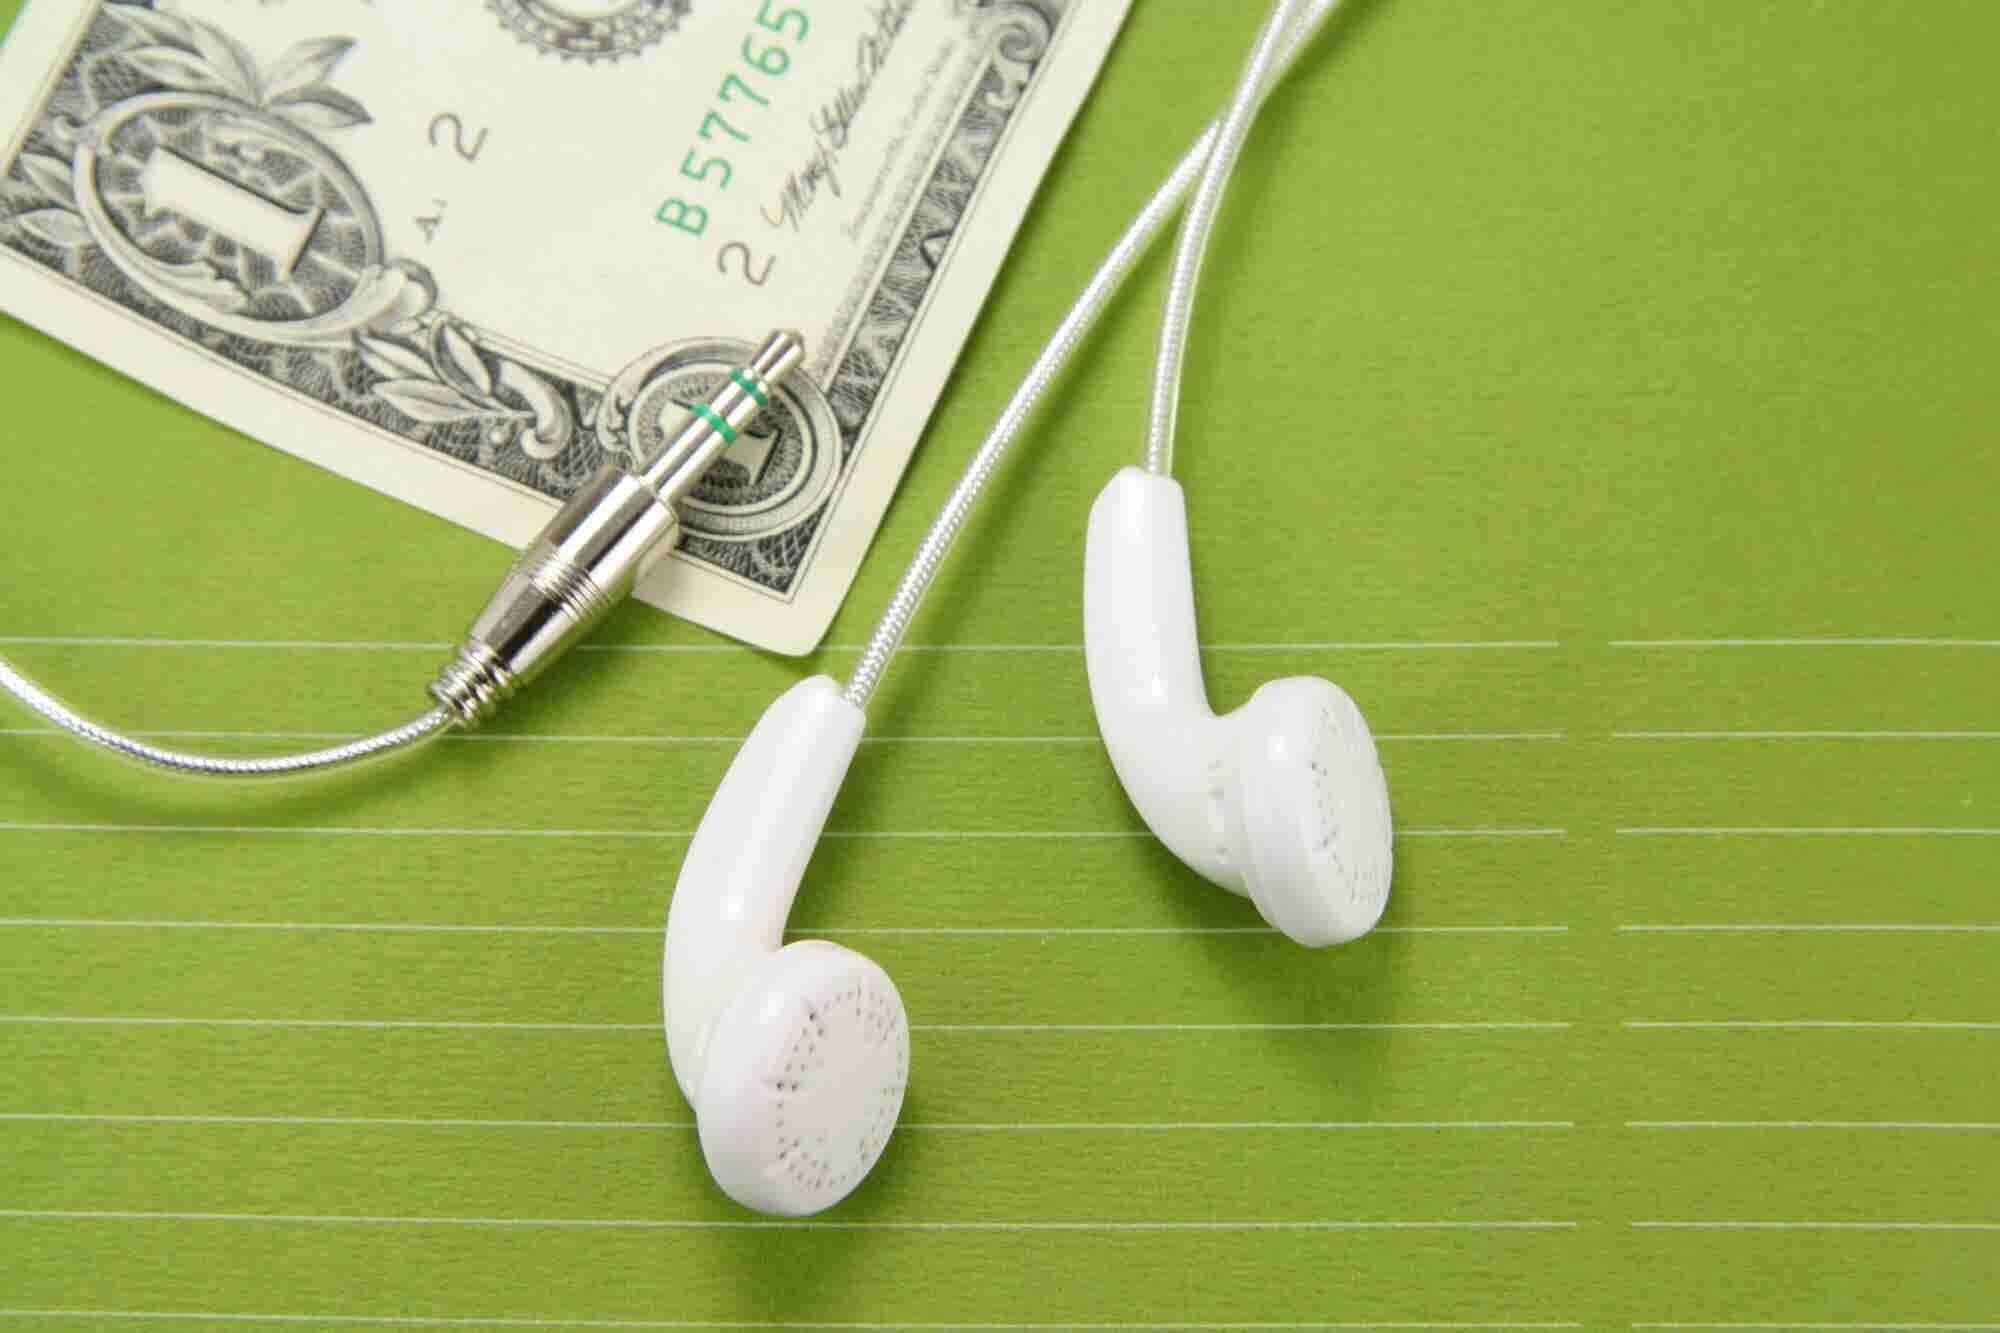 This Entrepreneur Built a Business That Pays You to Listen to Podcasts. Here Are His 4 Tips for a Successful Business Idea.